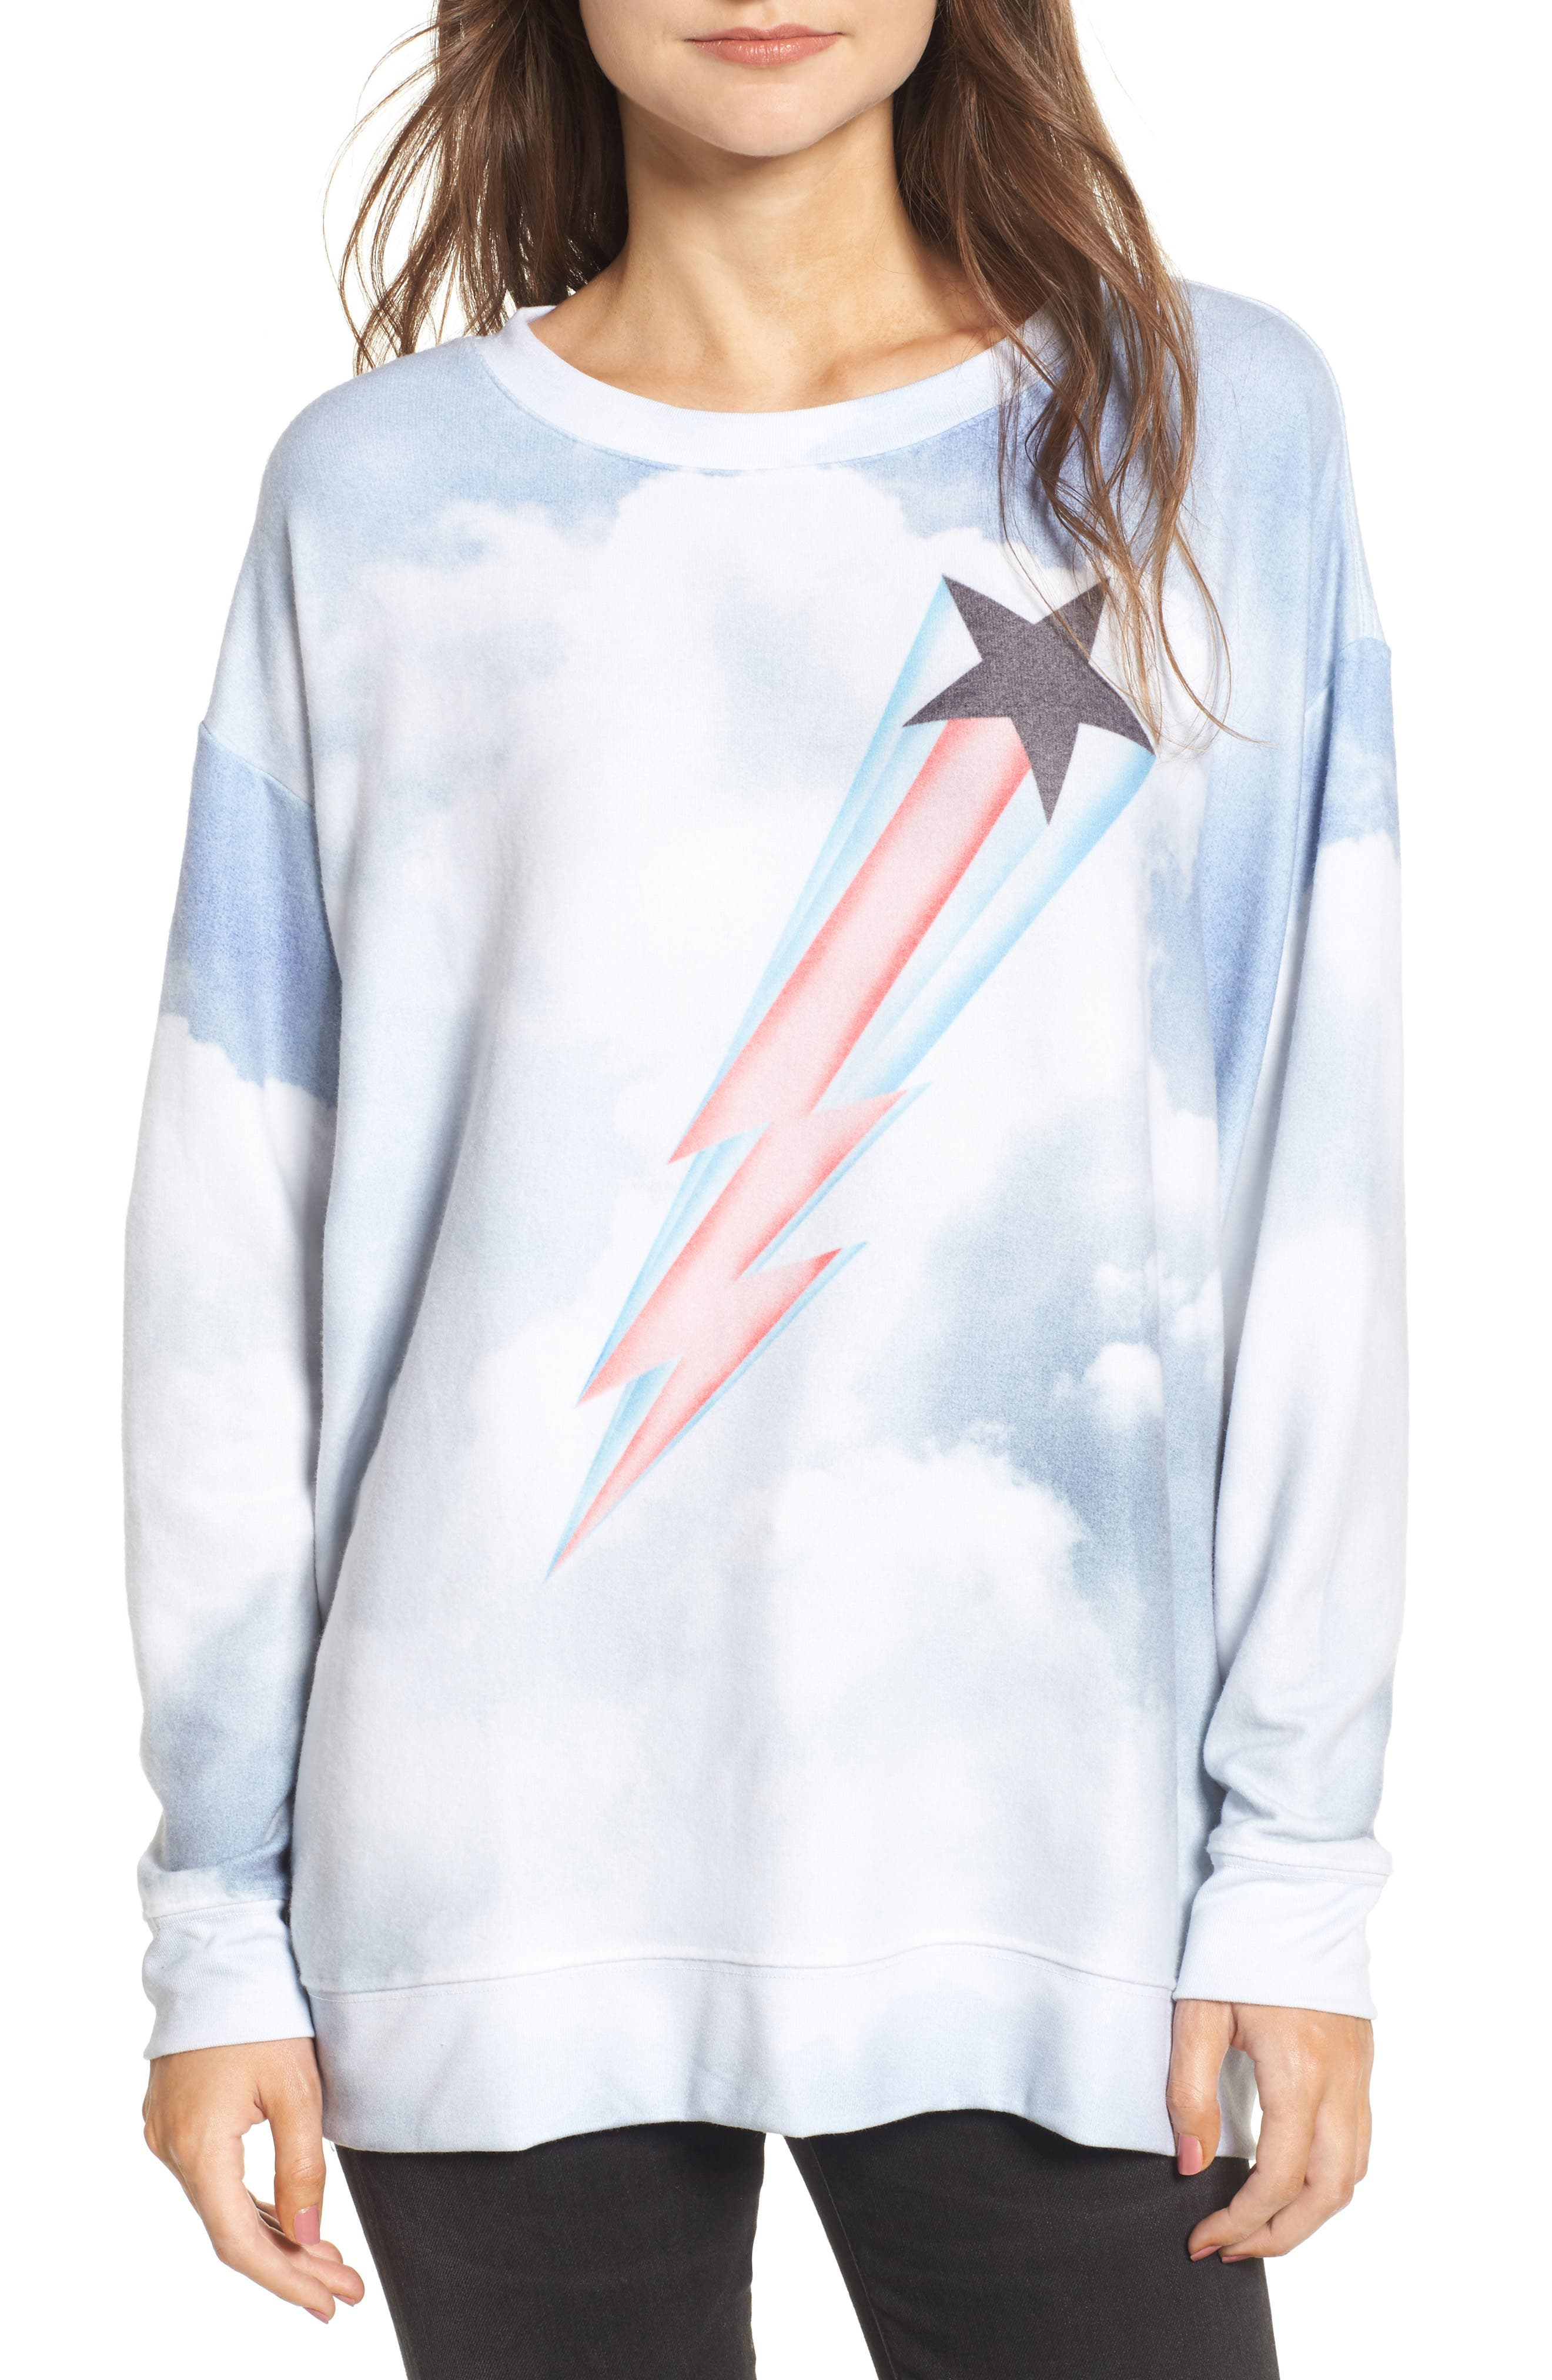 Heavens Roadtrip Sweatshirt,                         Main,                         color, 660